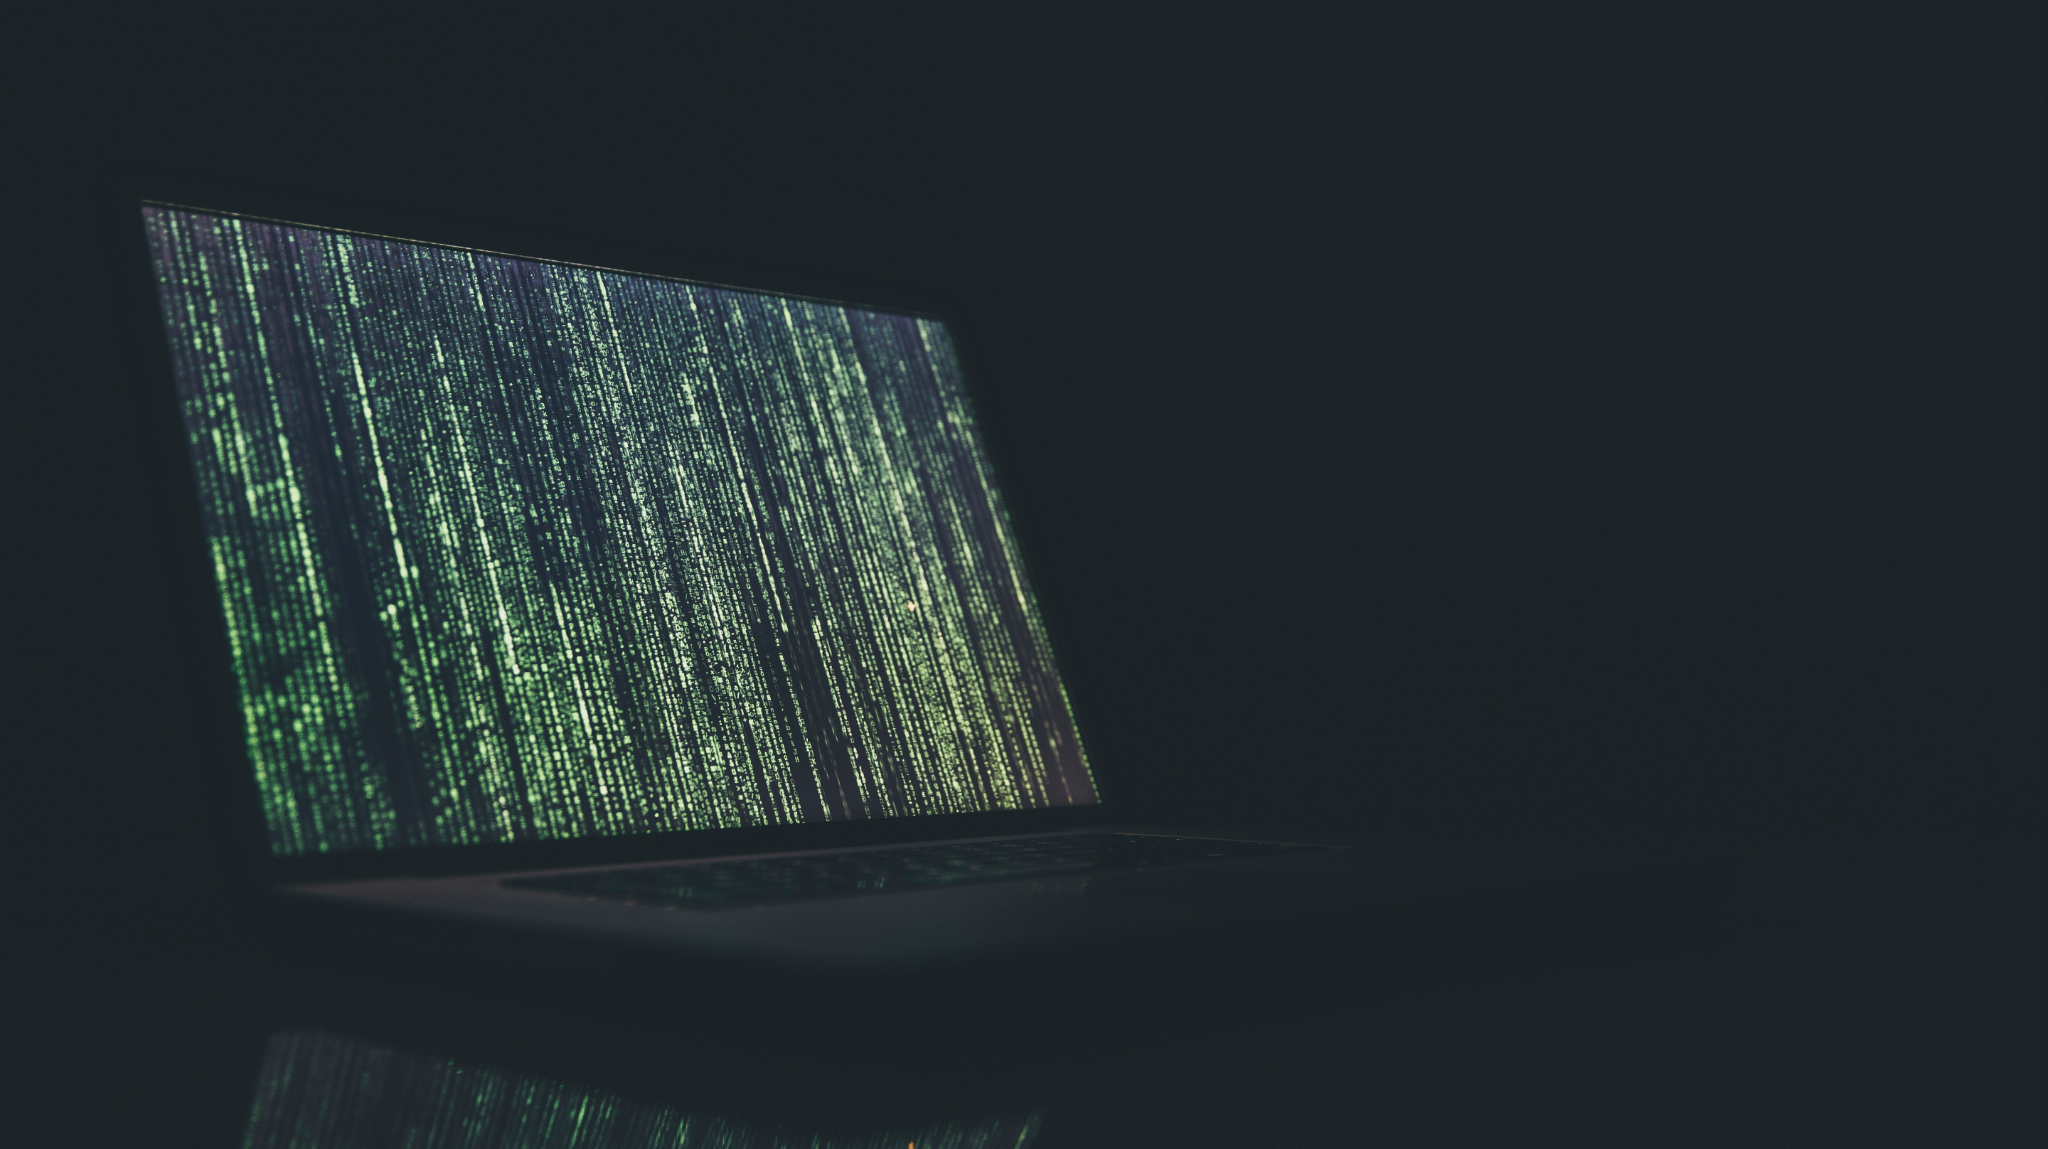 The Most Significant Password Breaches Of 2020 - Expert Insights